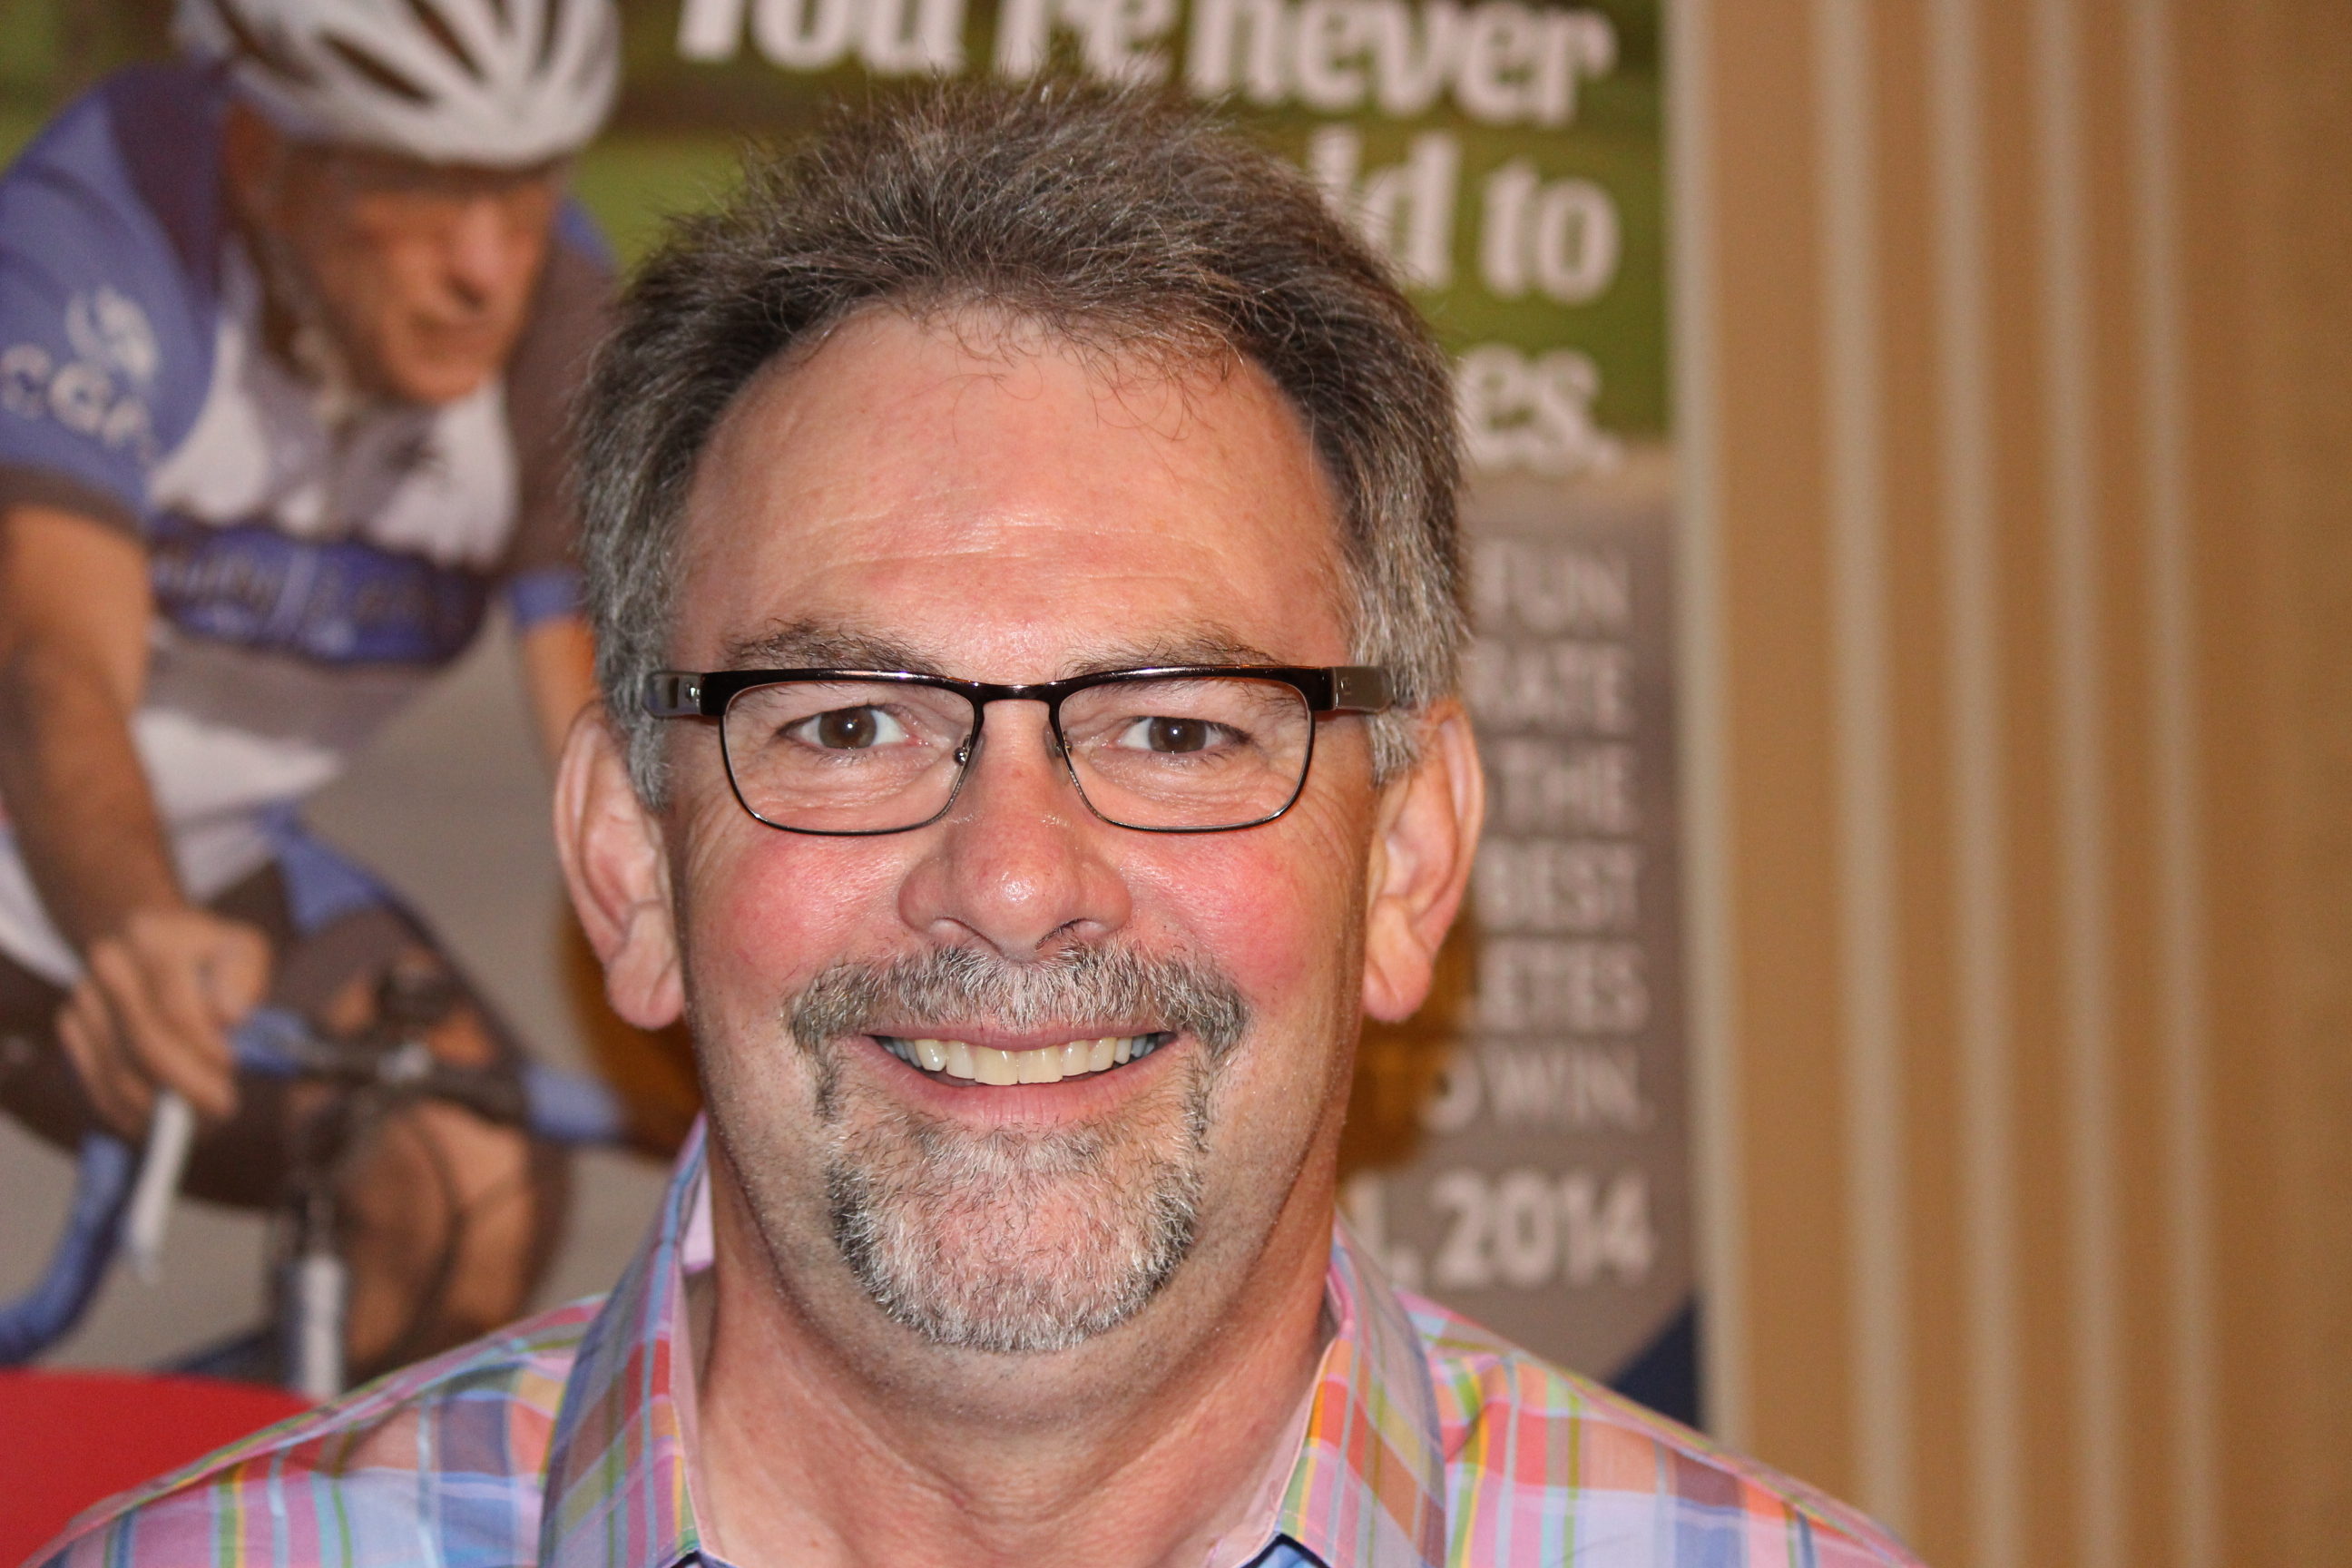 Co-chair of the Ontario 55+ Summer Games, Calvin Little. (Photo by Adelle Loiselle.)